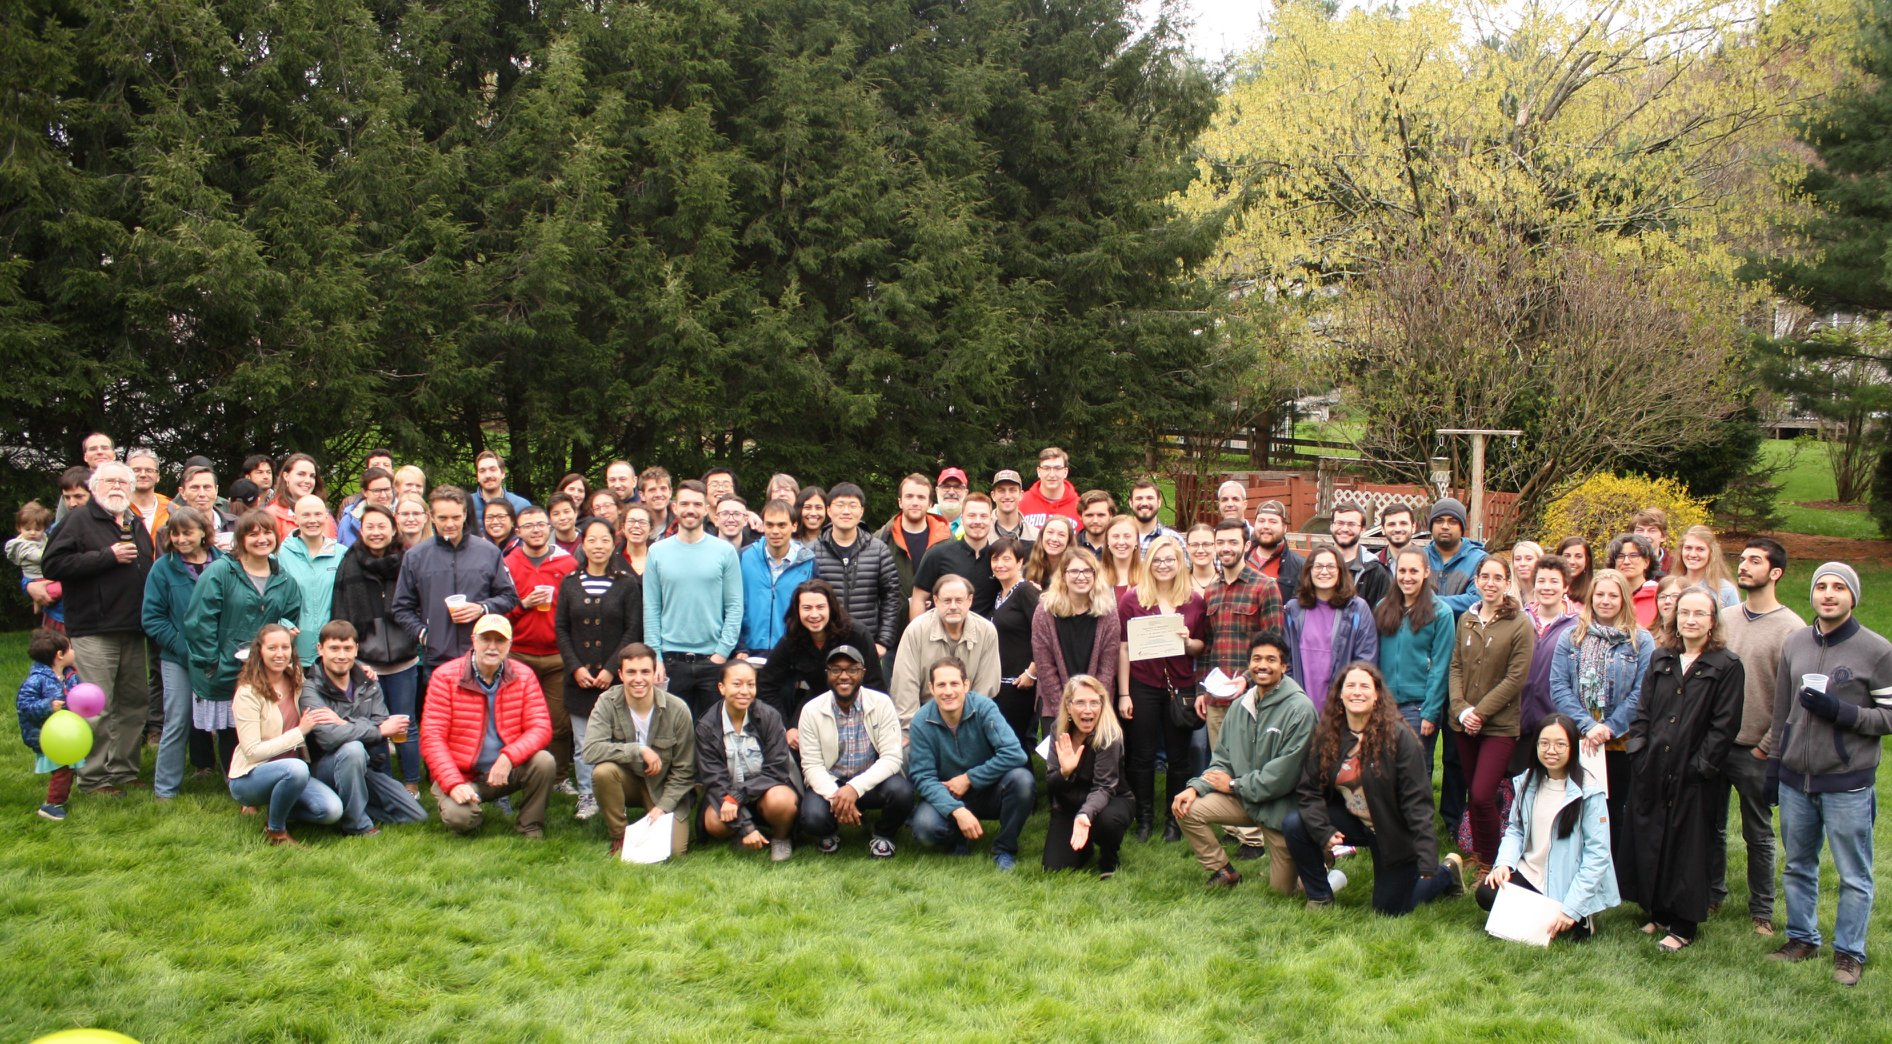 Group photo of department members from Geosciences Spring Picnic 2019